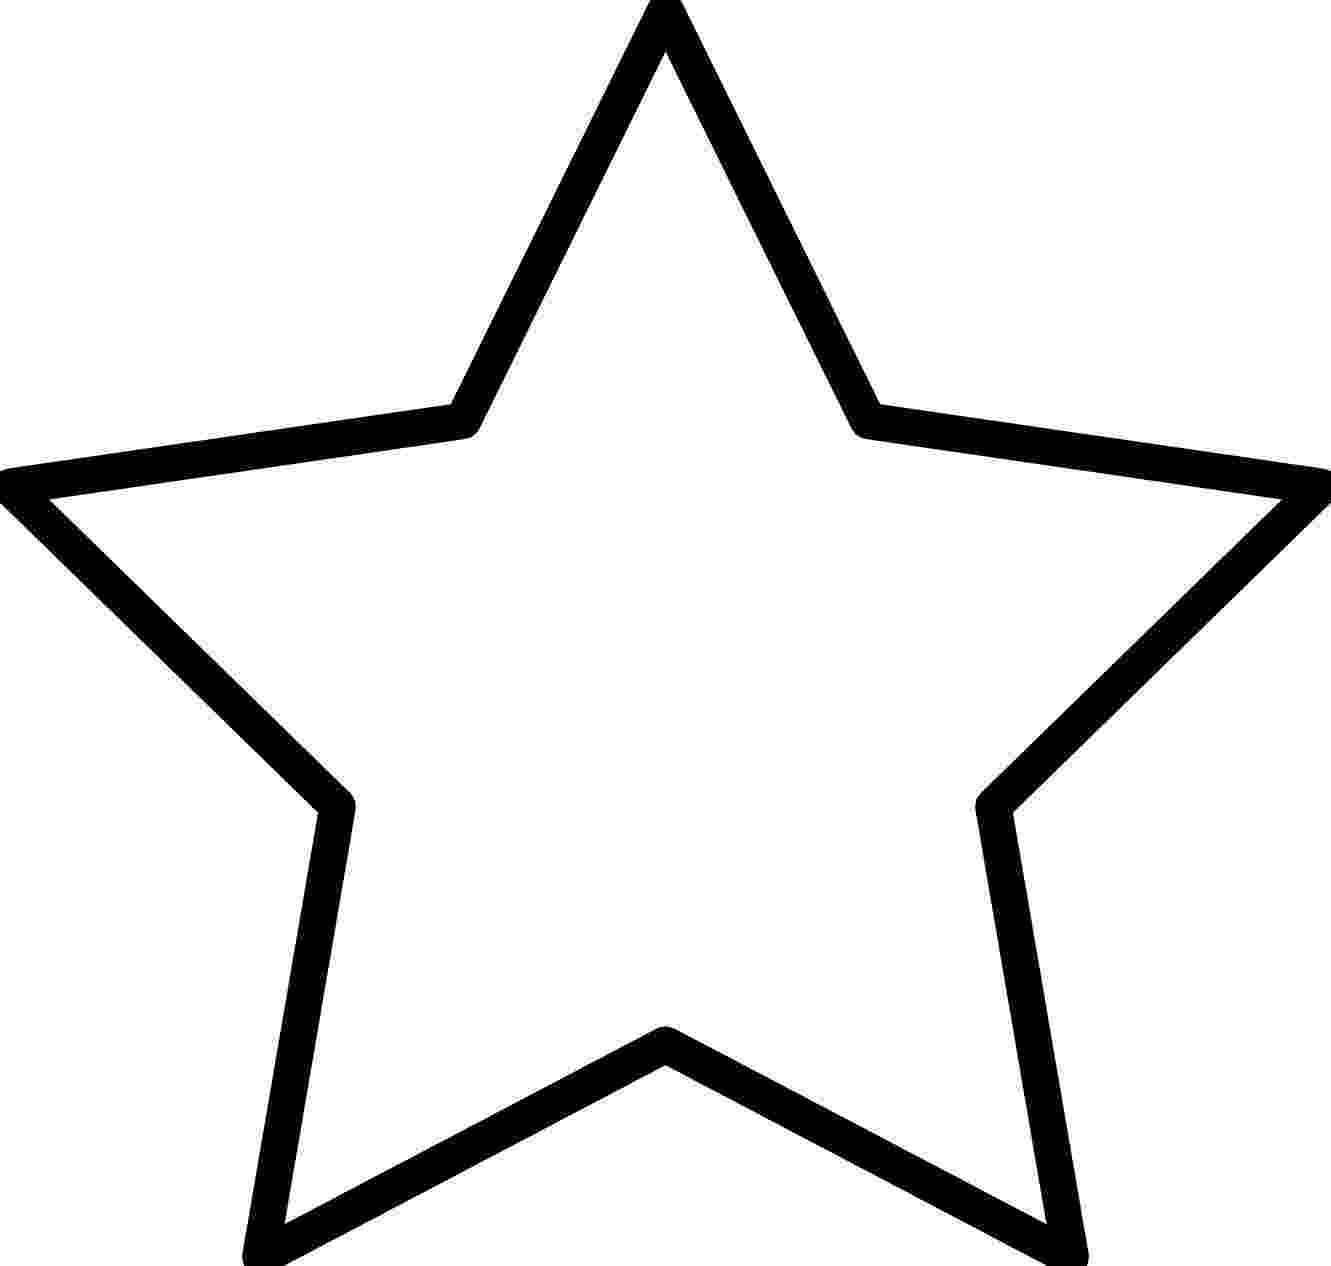 coloring pages of a star free printable star coloring pages for kids cool2bkids of a coloring pages star